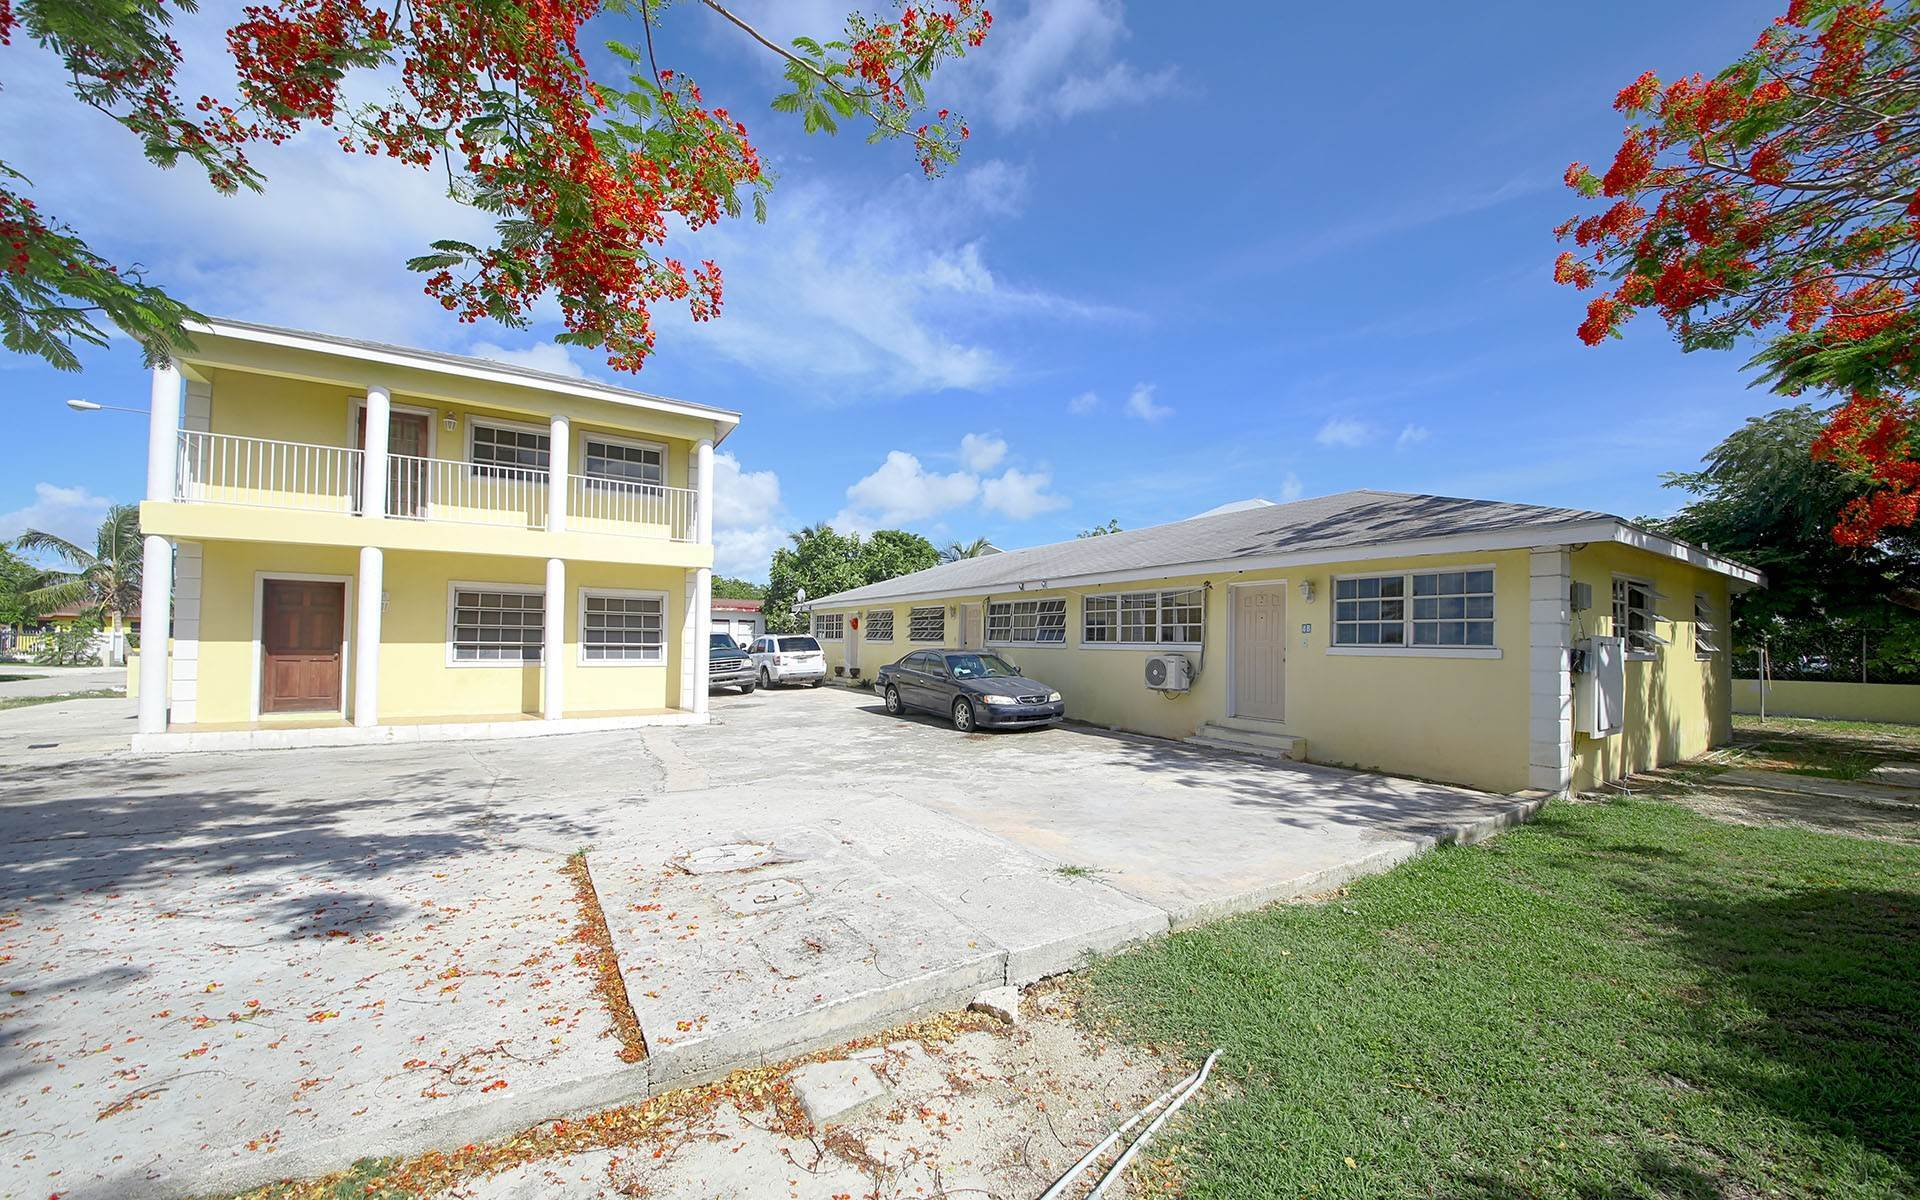 Multi Family for Sale at Colony Village Residence with Detached Triplex - MLS 31673 Nassau And Paradise Island, Bahamas